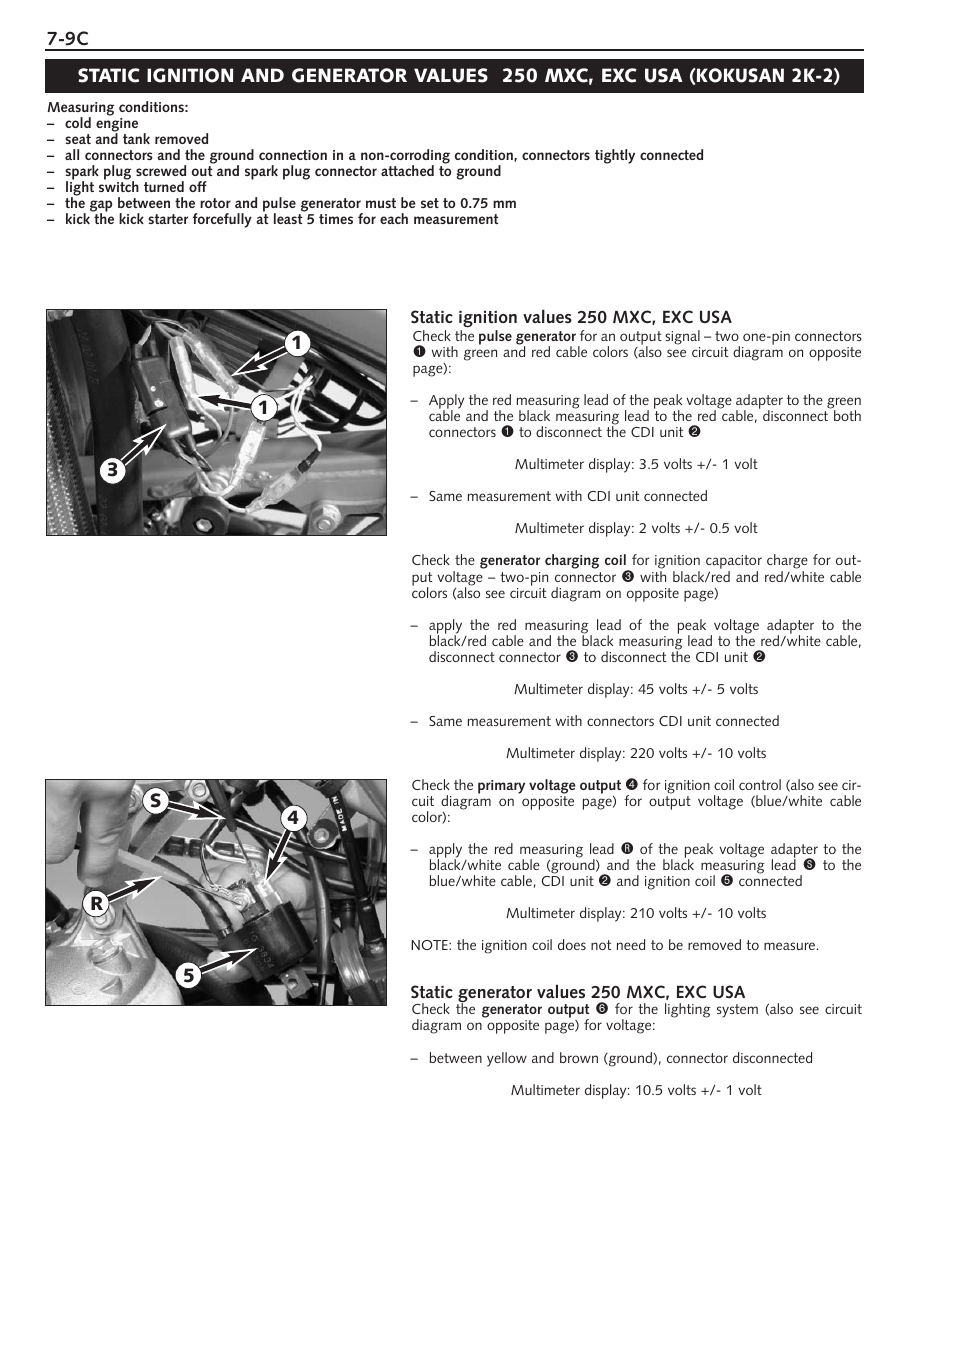 Ktm 250 Sx User Manual Page 76 153 Also For 300 380sx Wiring Diagram Ignition Coil Plug Black Or